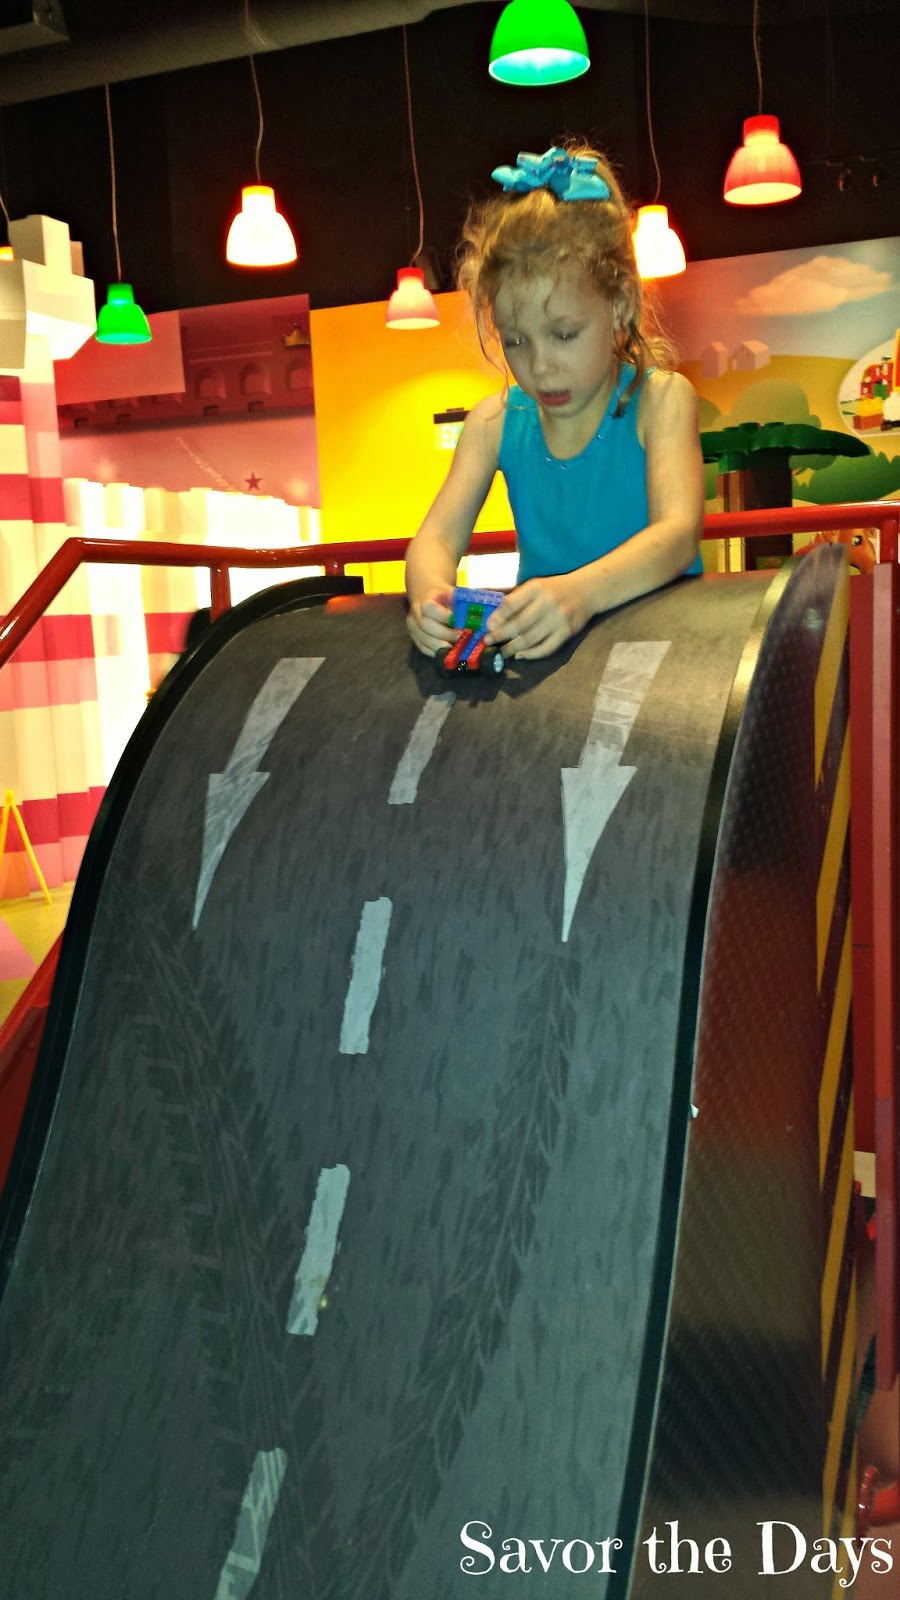 Girl racing Lego car track at Legoland Discovery Center in Grapevine